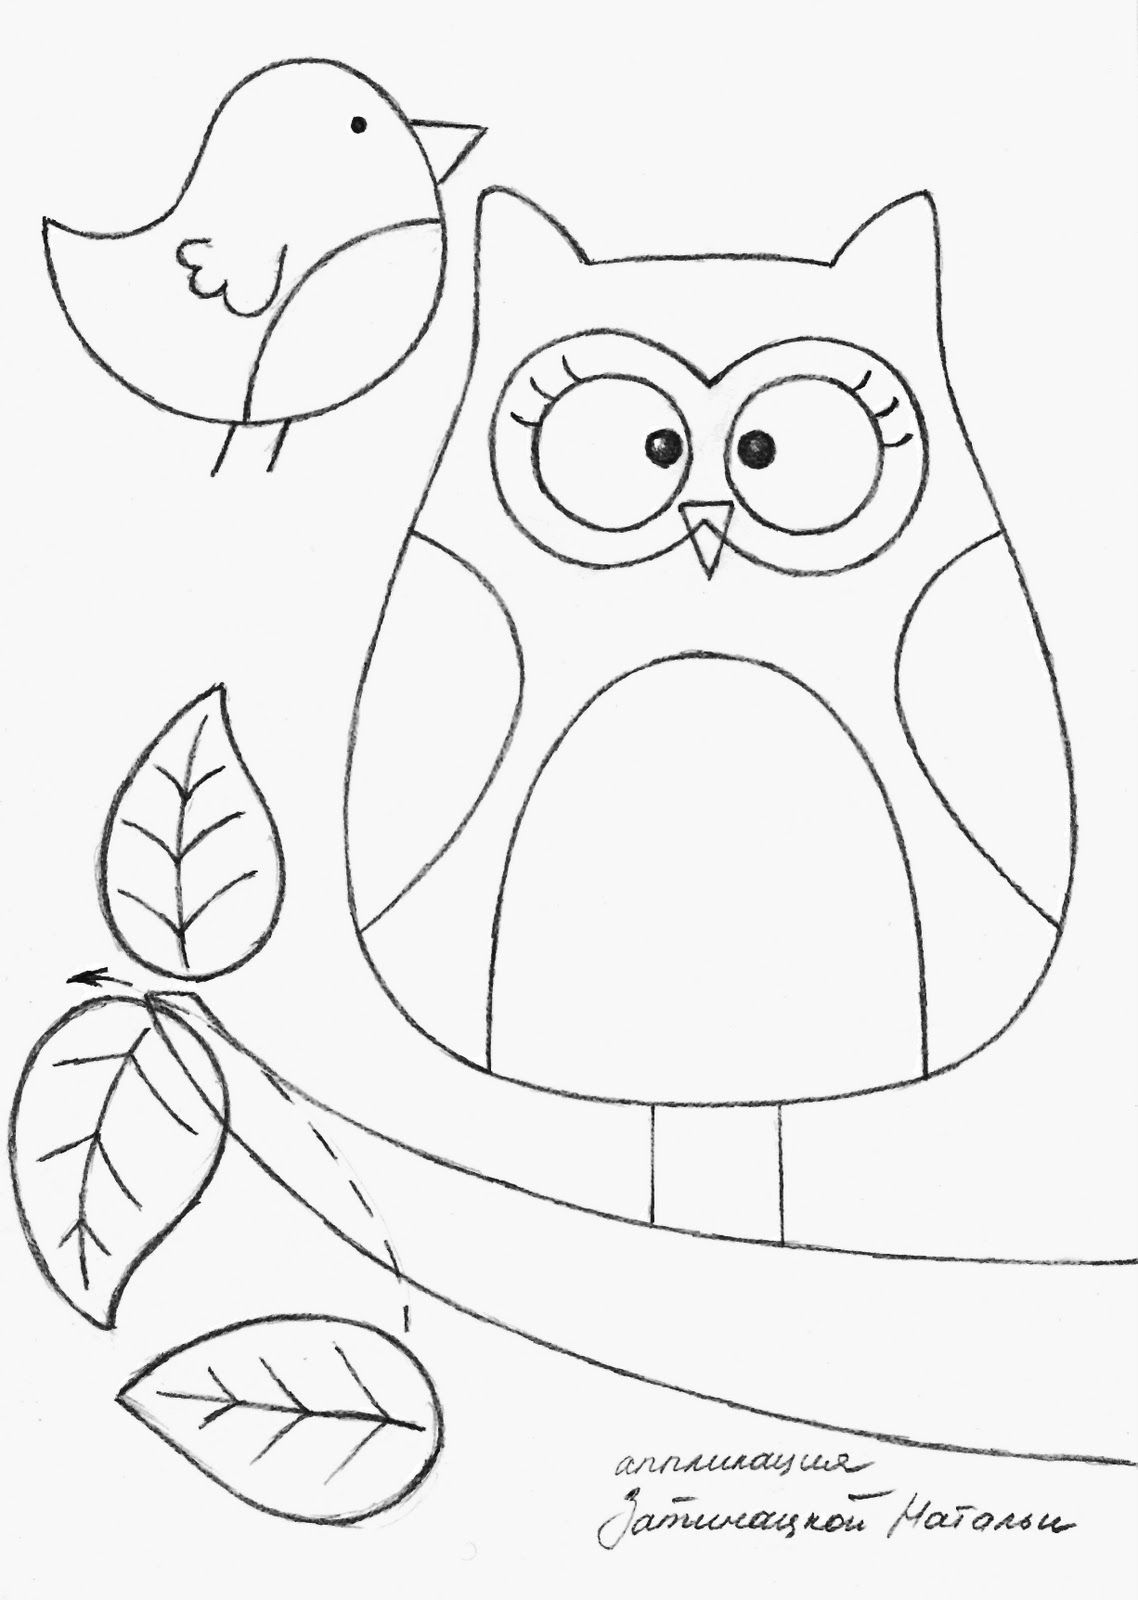 Owl template | DRAWINGS AND PATTERNS | Pinterest | Owl, Molde y Patrones